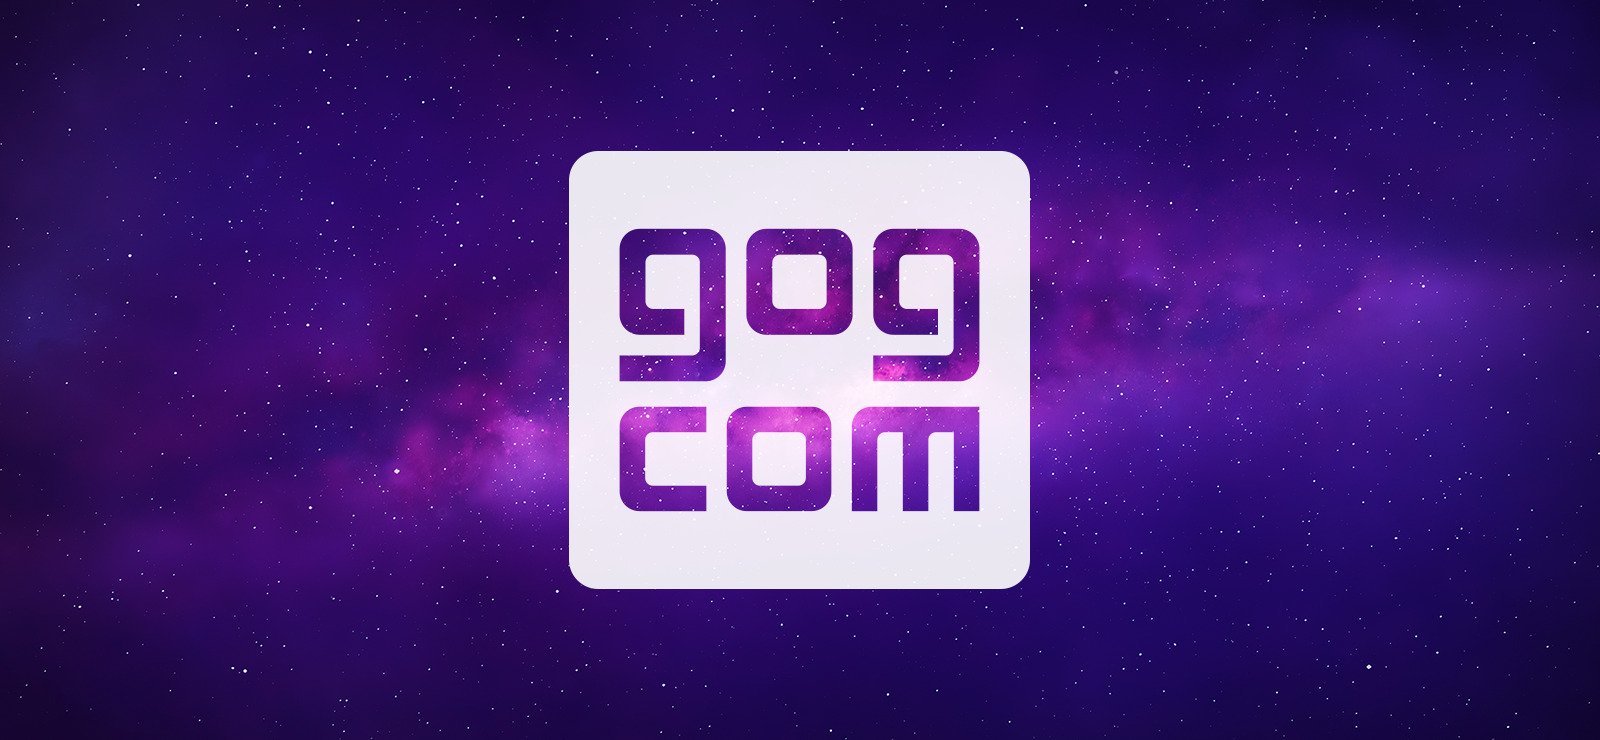 GOG GALAXY 2.0 main features detailed, will allow you to connect with your friends across all gaming platforms